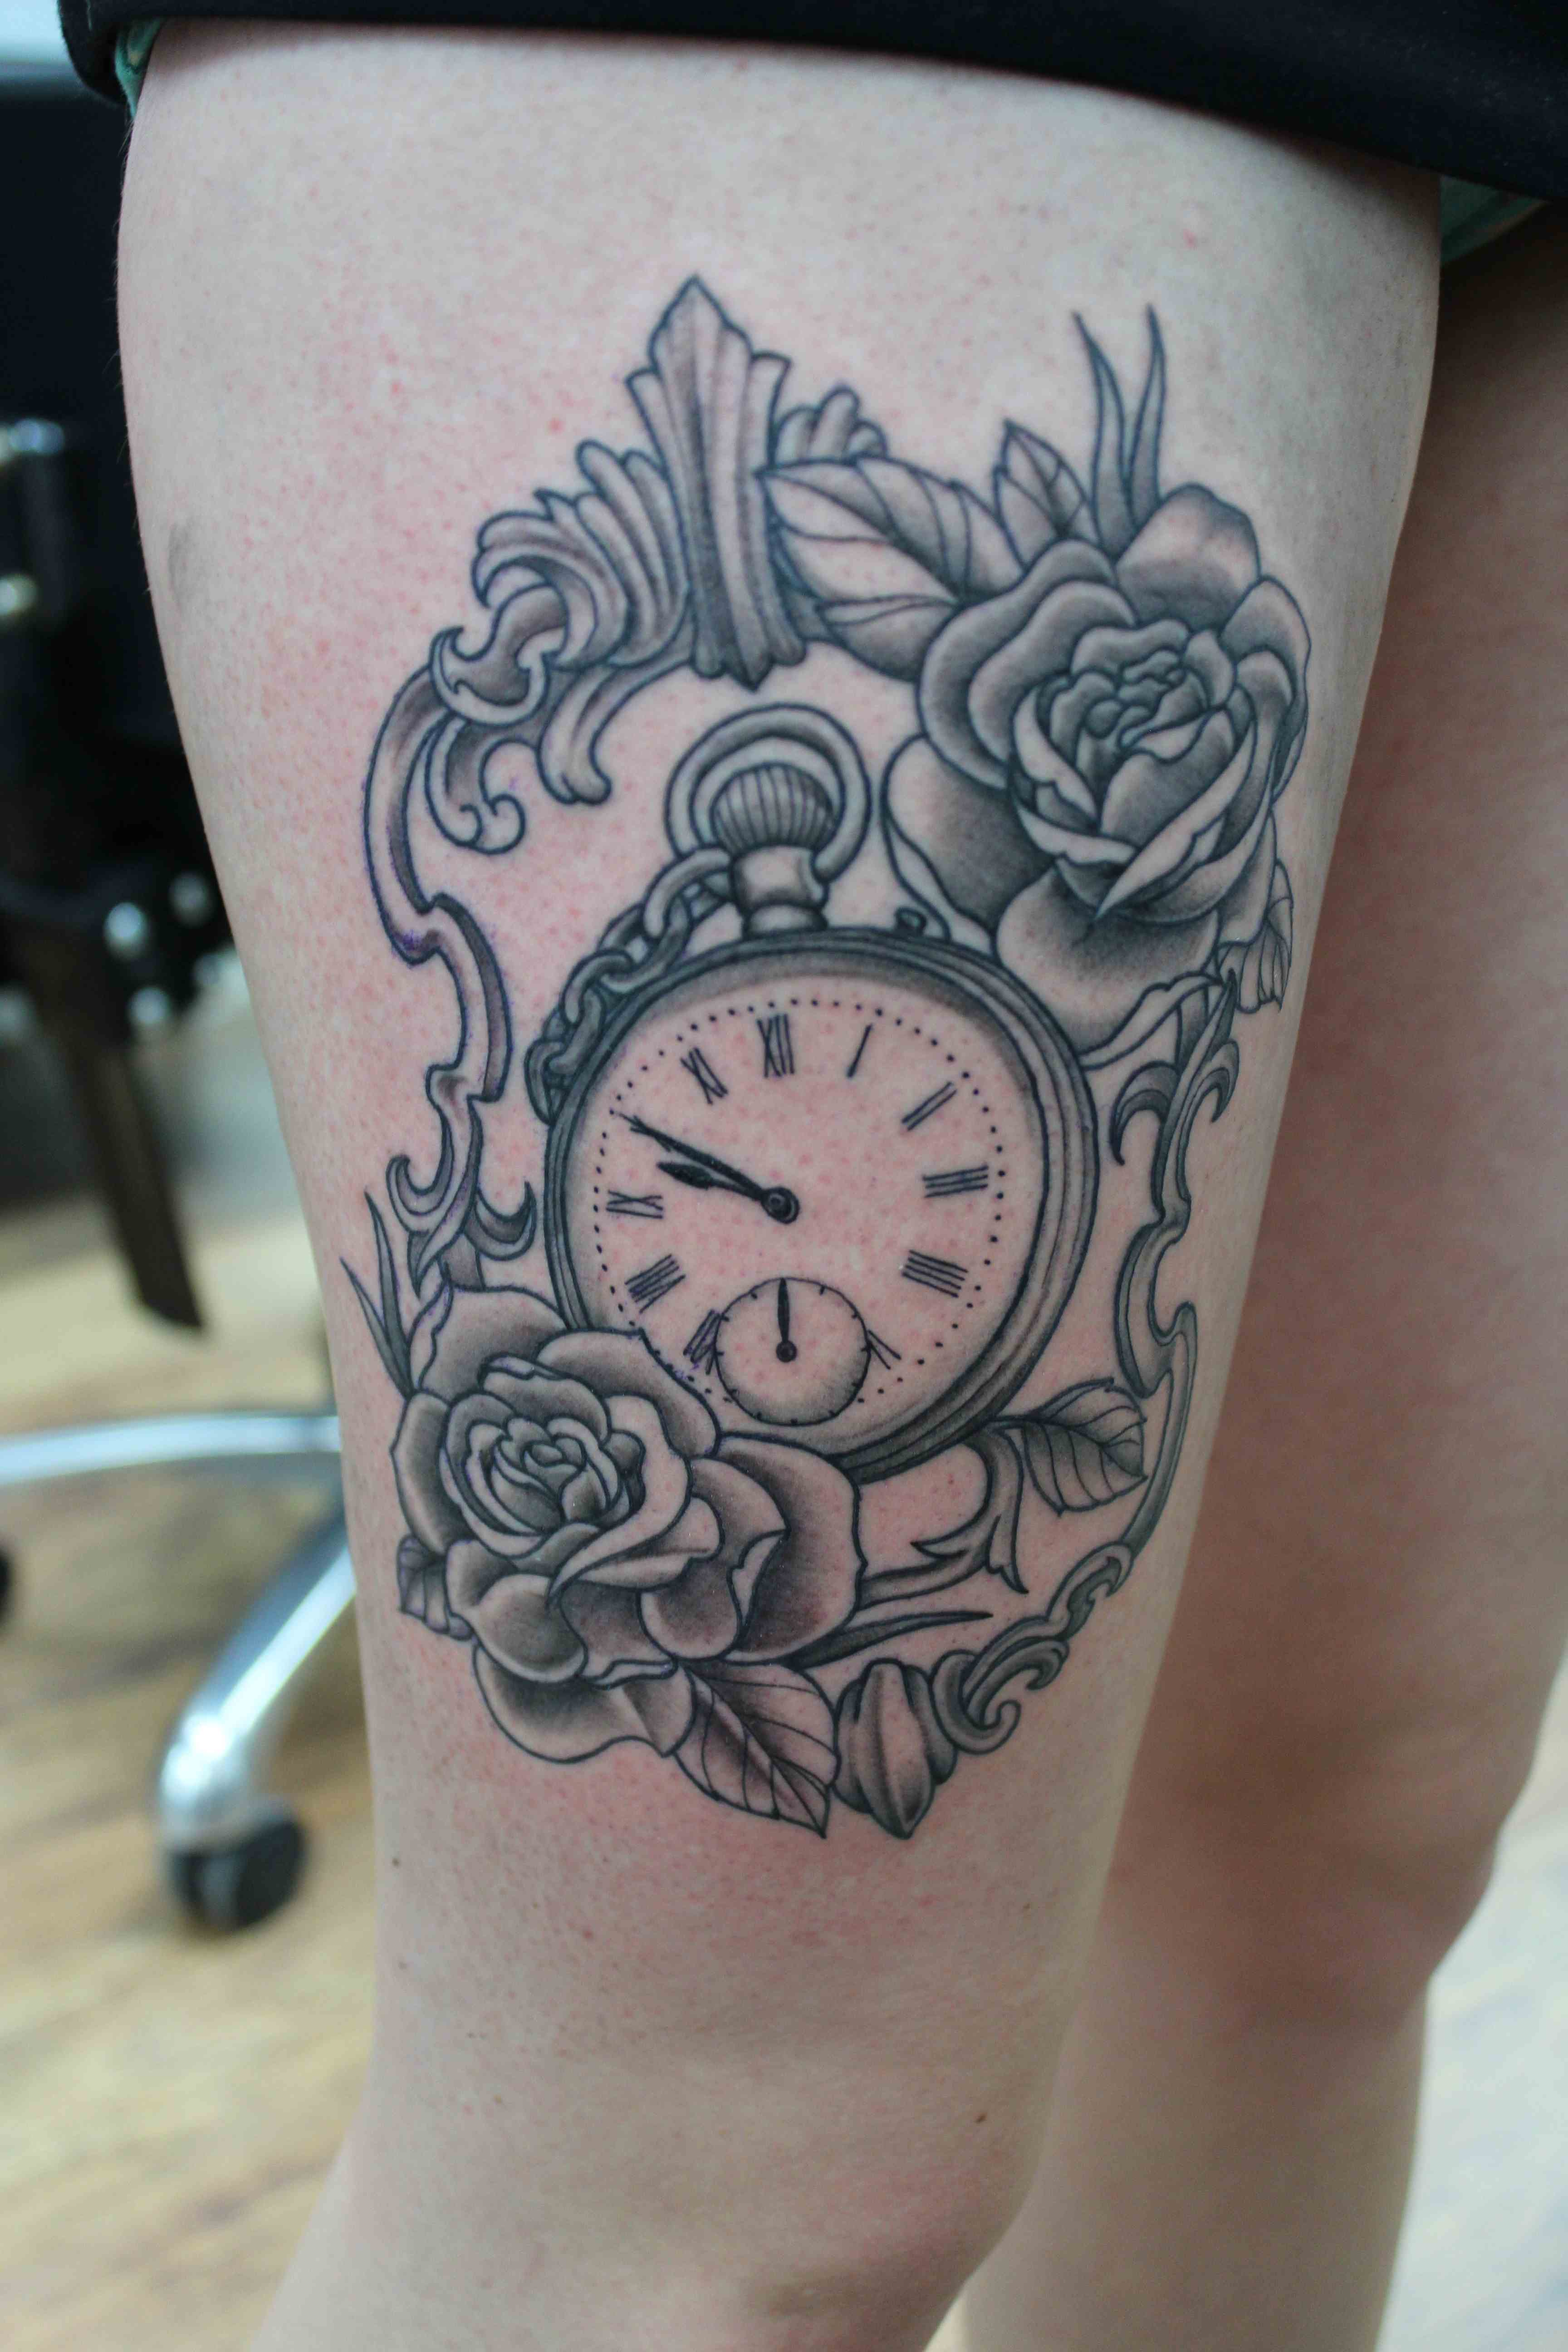 19 pocket watch tattoo images pictures and ideas pocket watch in frame with ros tattoo on thigh jeuxipadfo Image collections